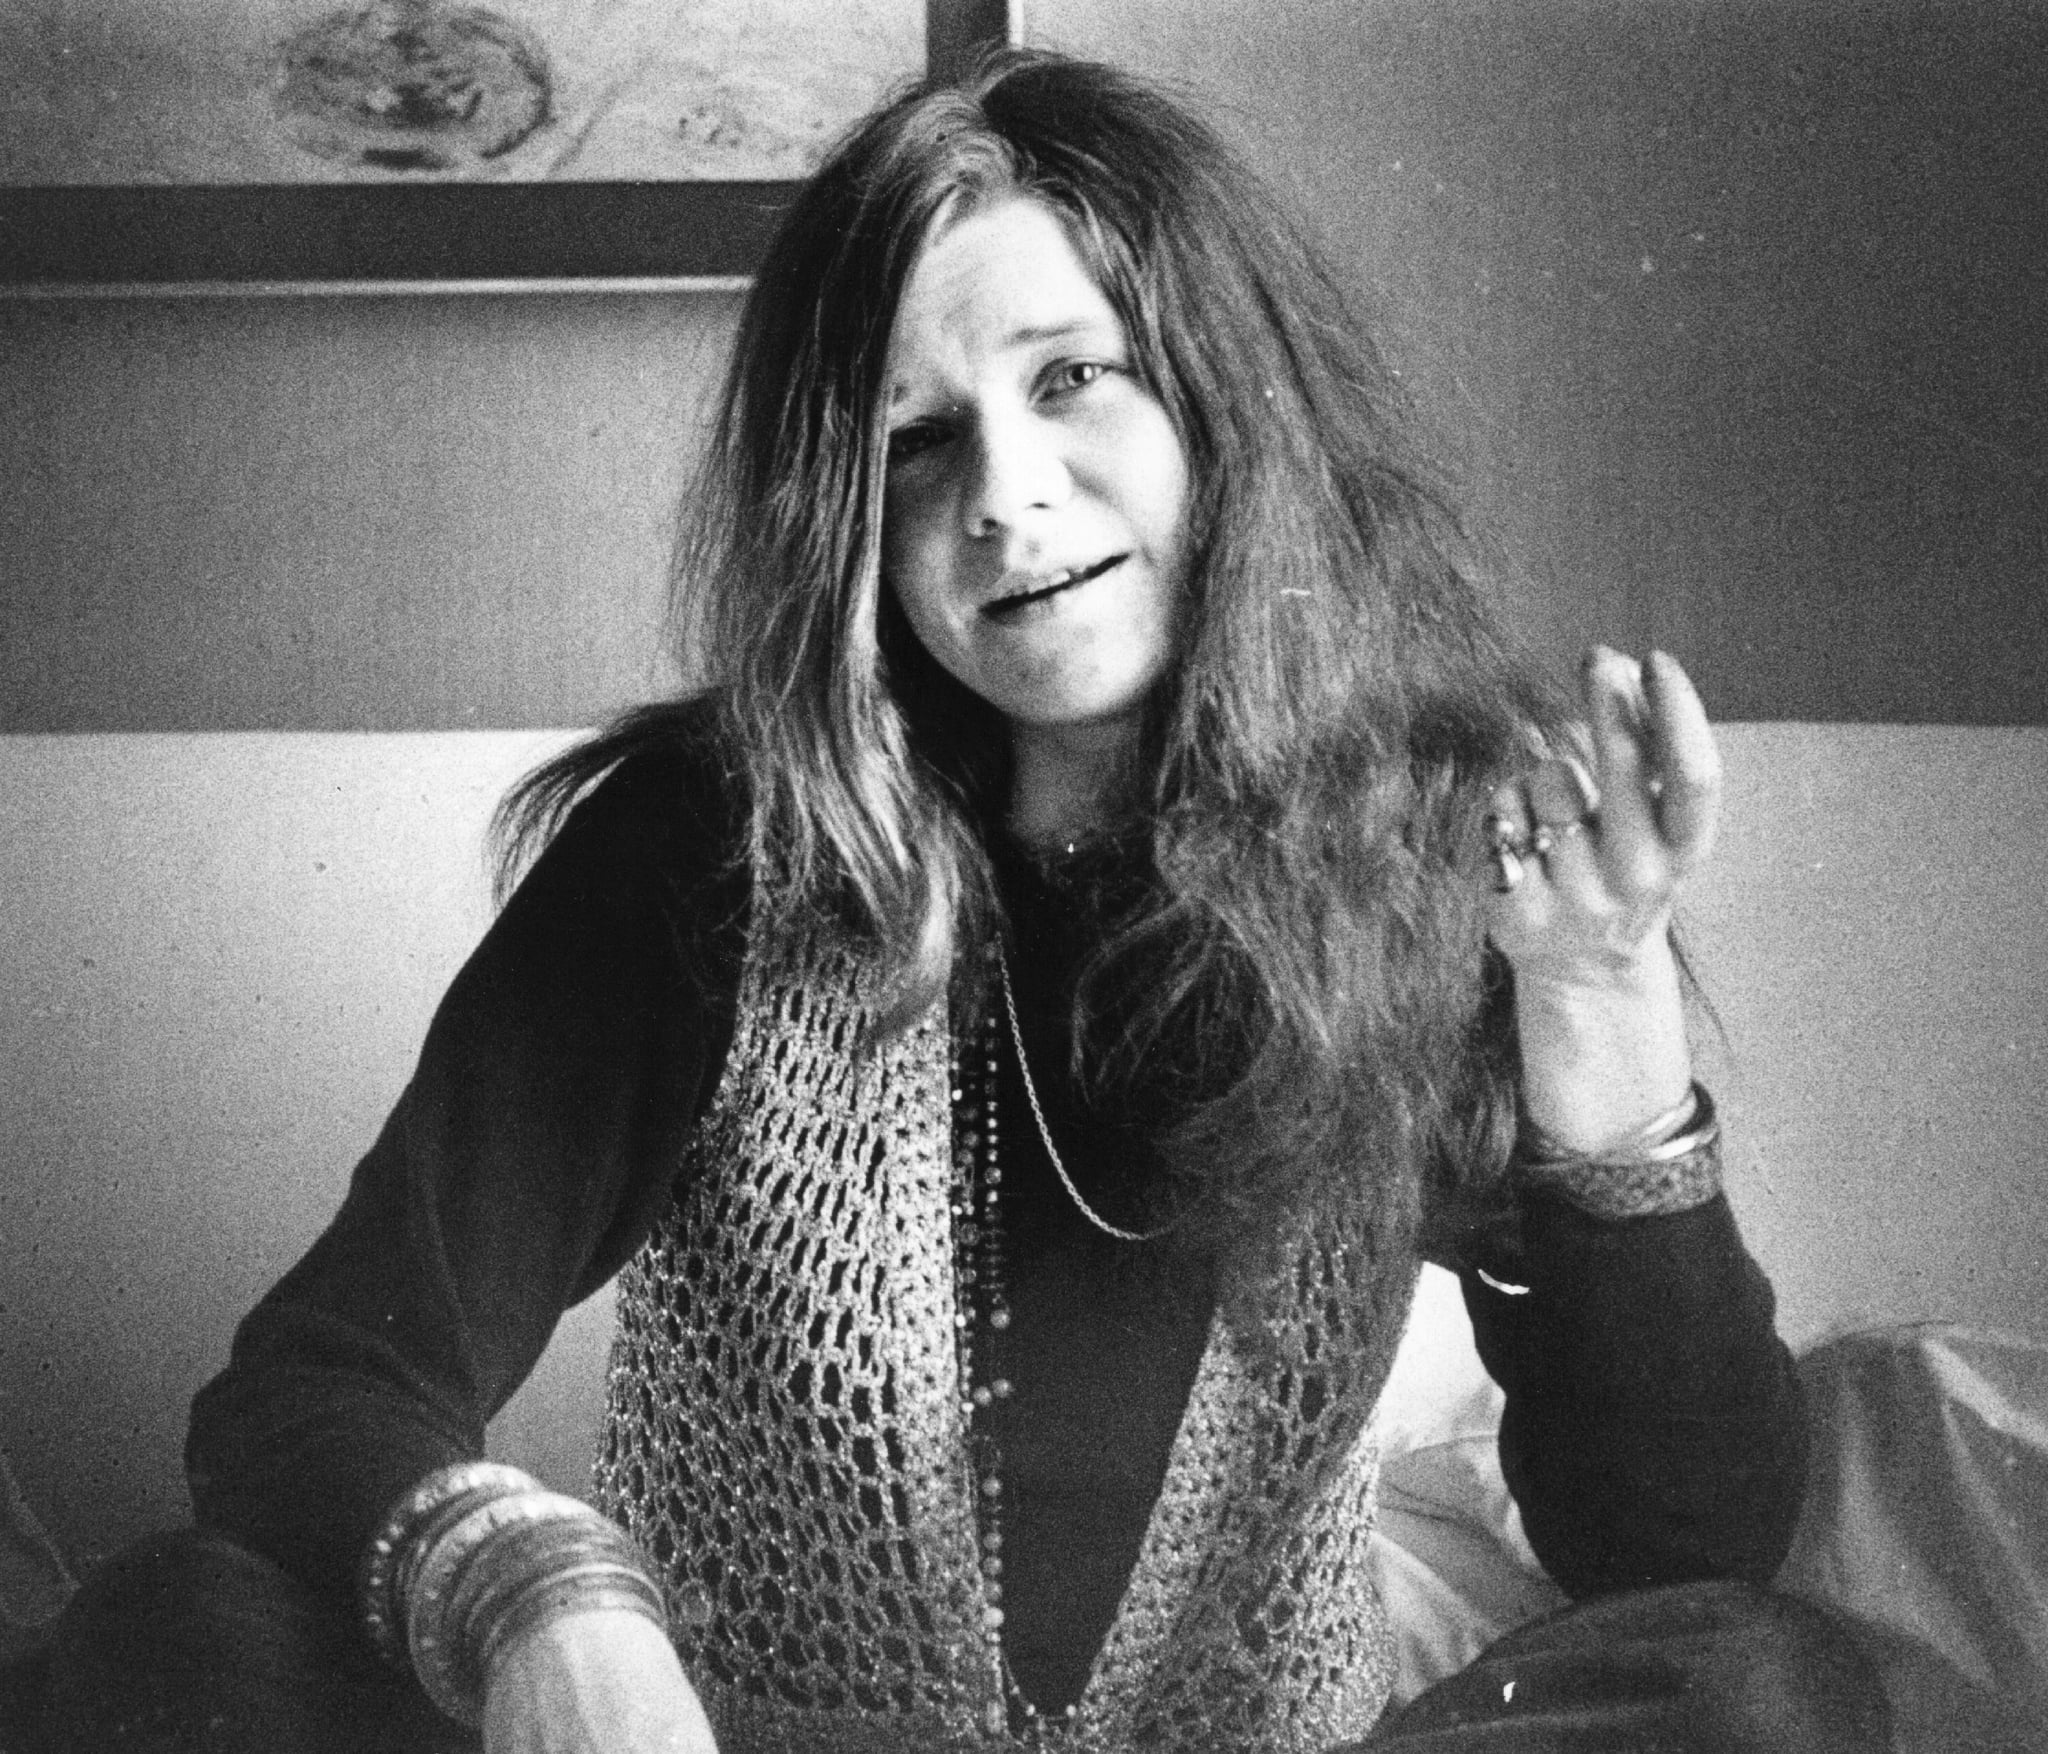 Janis Joplin Was One Of The Most Gifted And Talented Singer Songwriters Of The S With A Powerhouse Voice And Understated No Frills Look